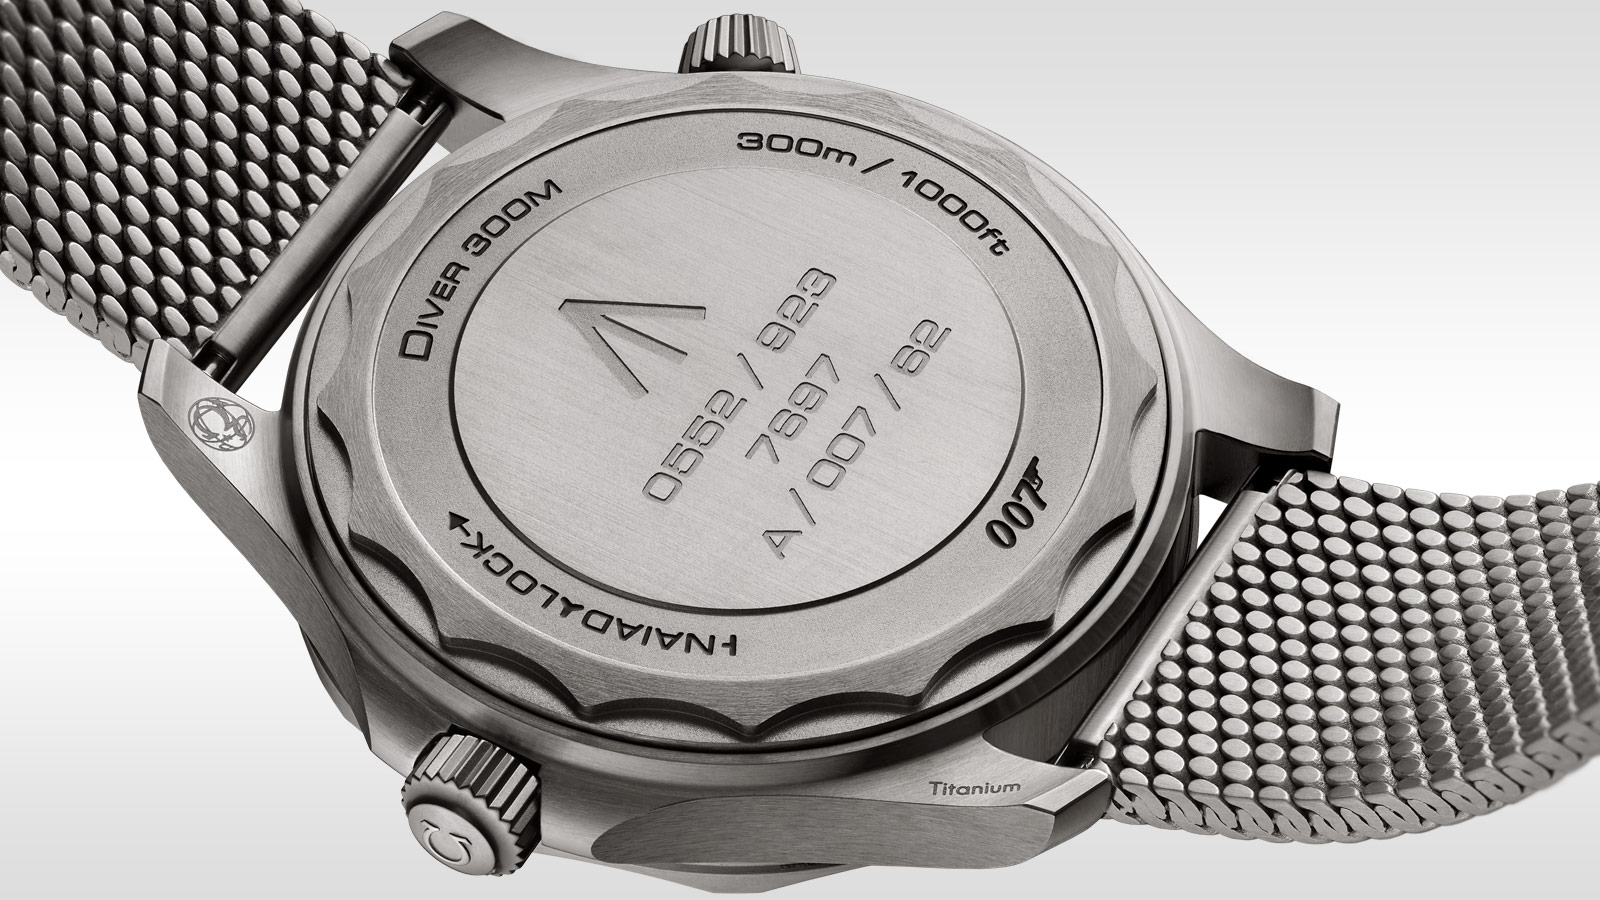 Seamaster Diver 300 M Diver 300M Omega Co‑Axial Master Chronometer 42 mm - 210.90.42.20.01.001 - View 3